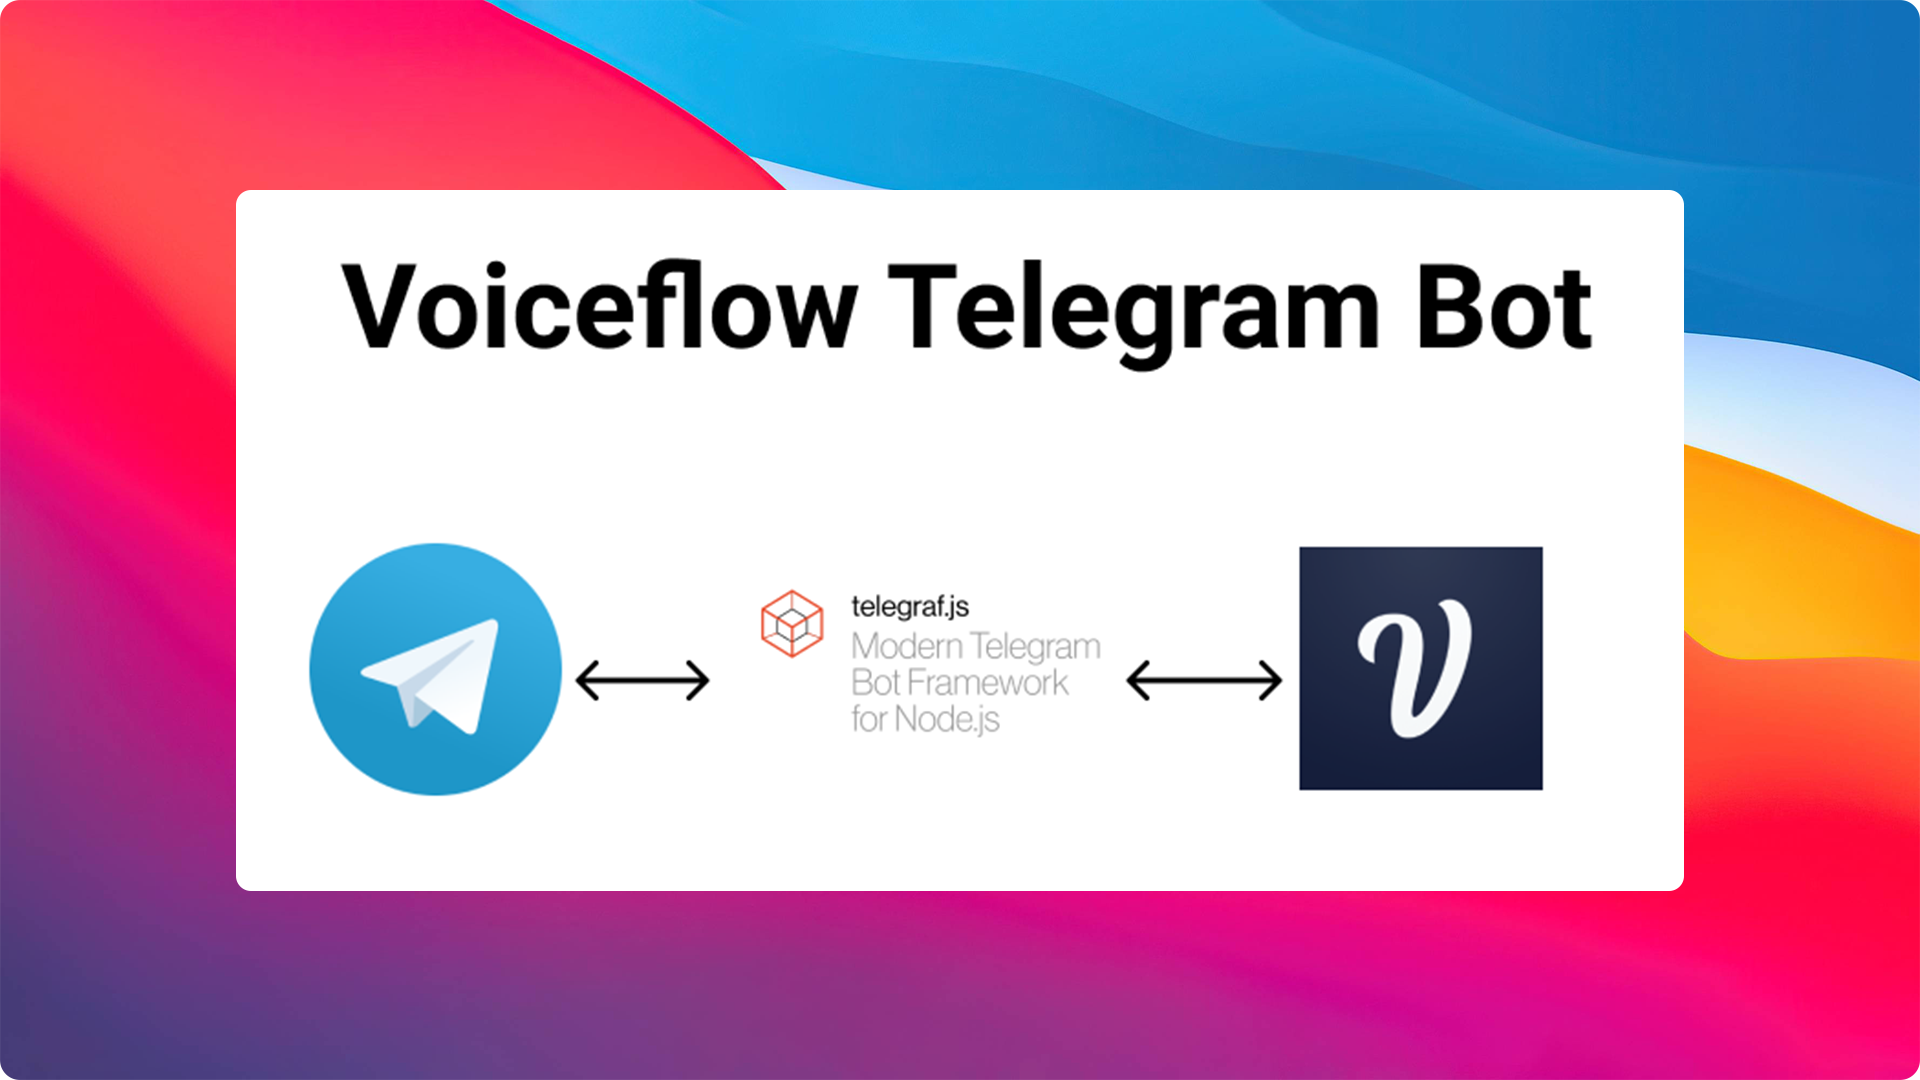 The architecture used to create a Voiceflow Telegram Bot